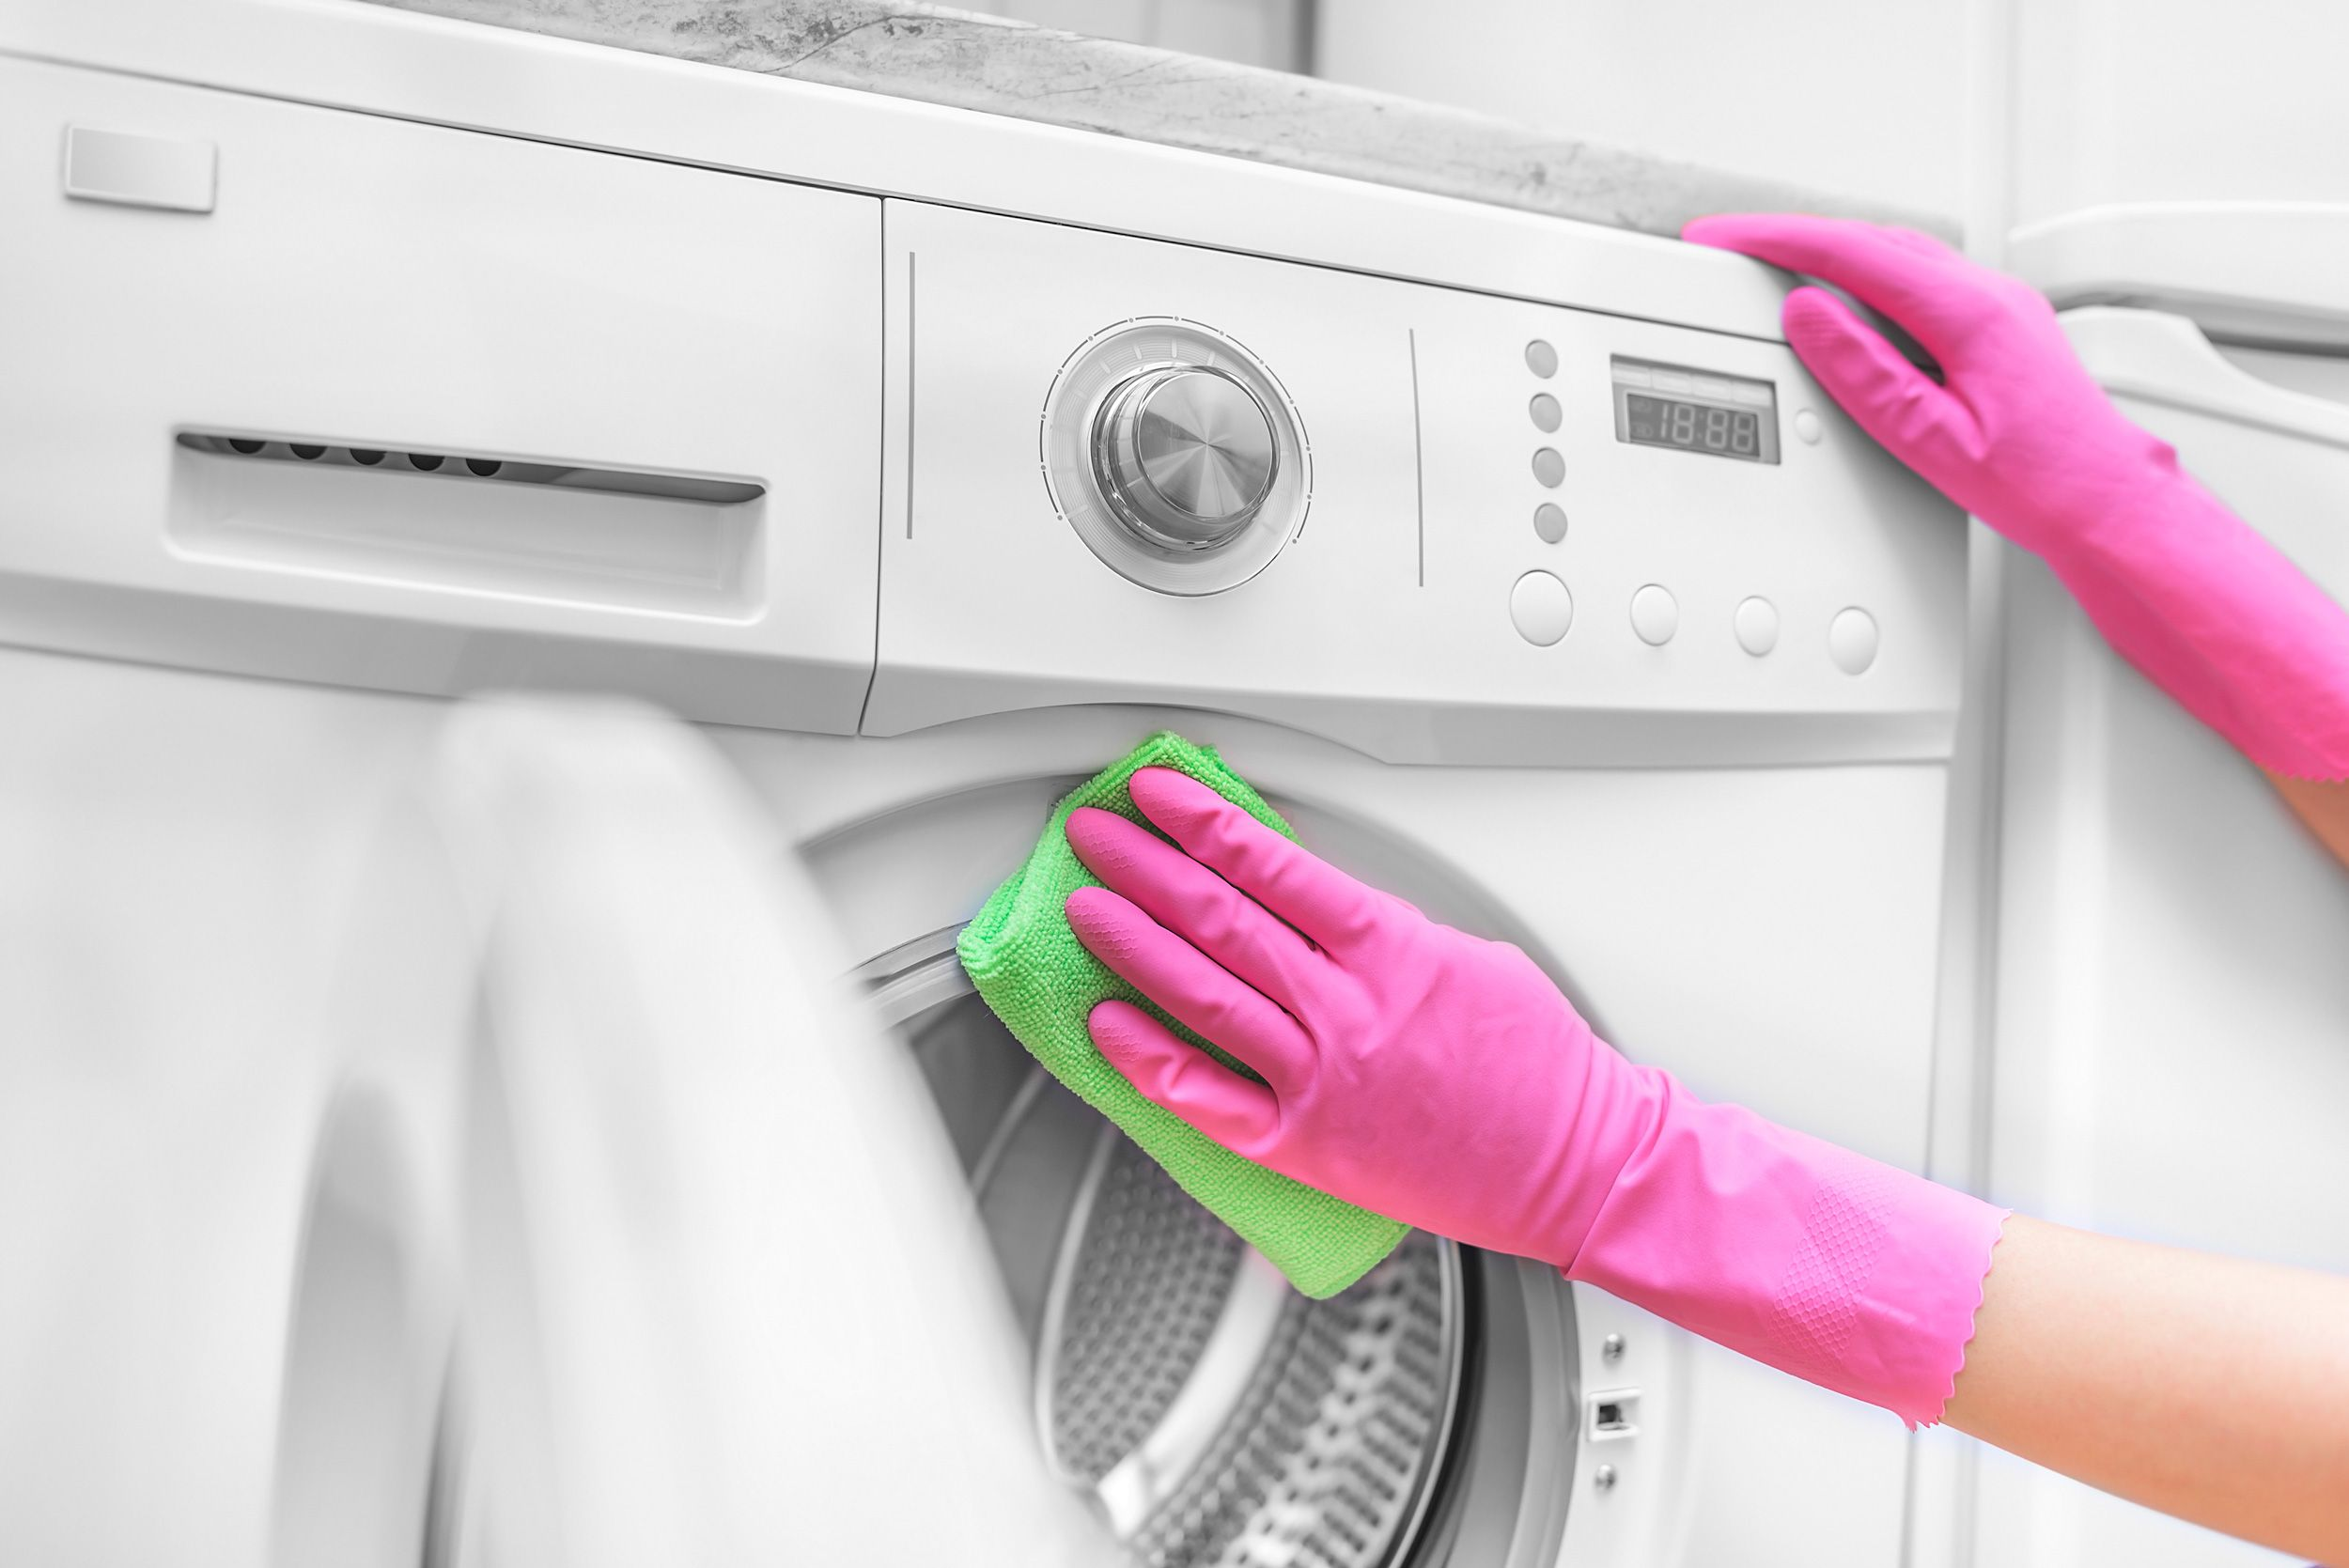 How to Clean a Washing Machine the Right Way